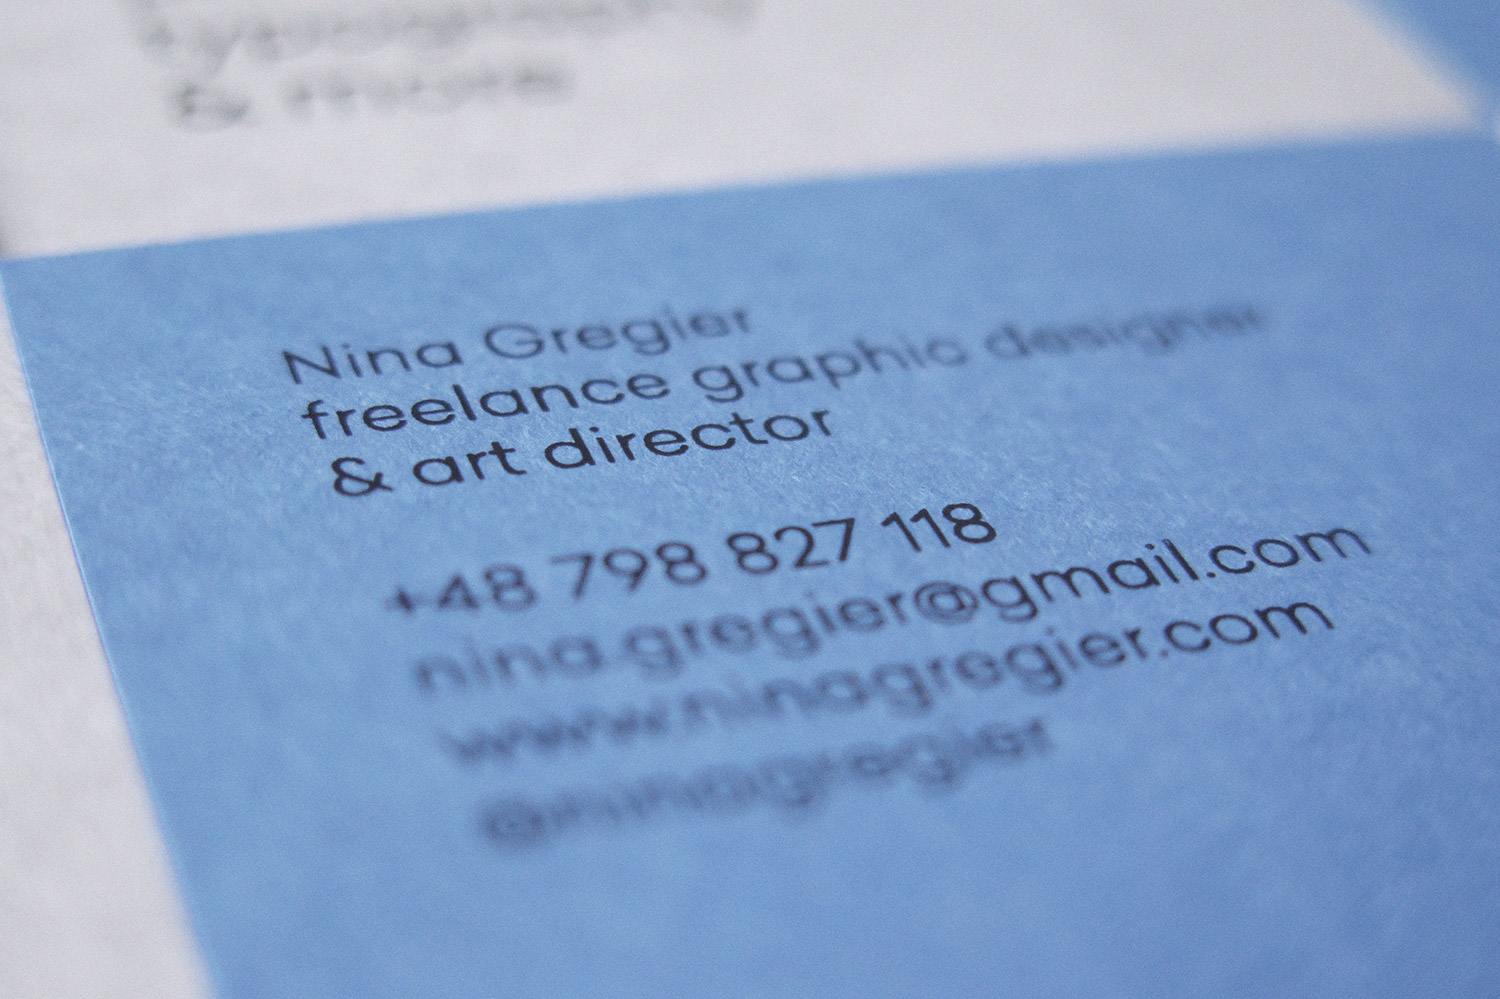 business cards nina gregier (5)